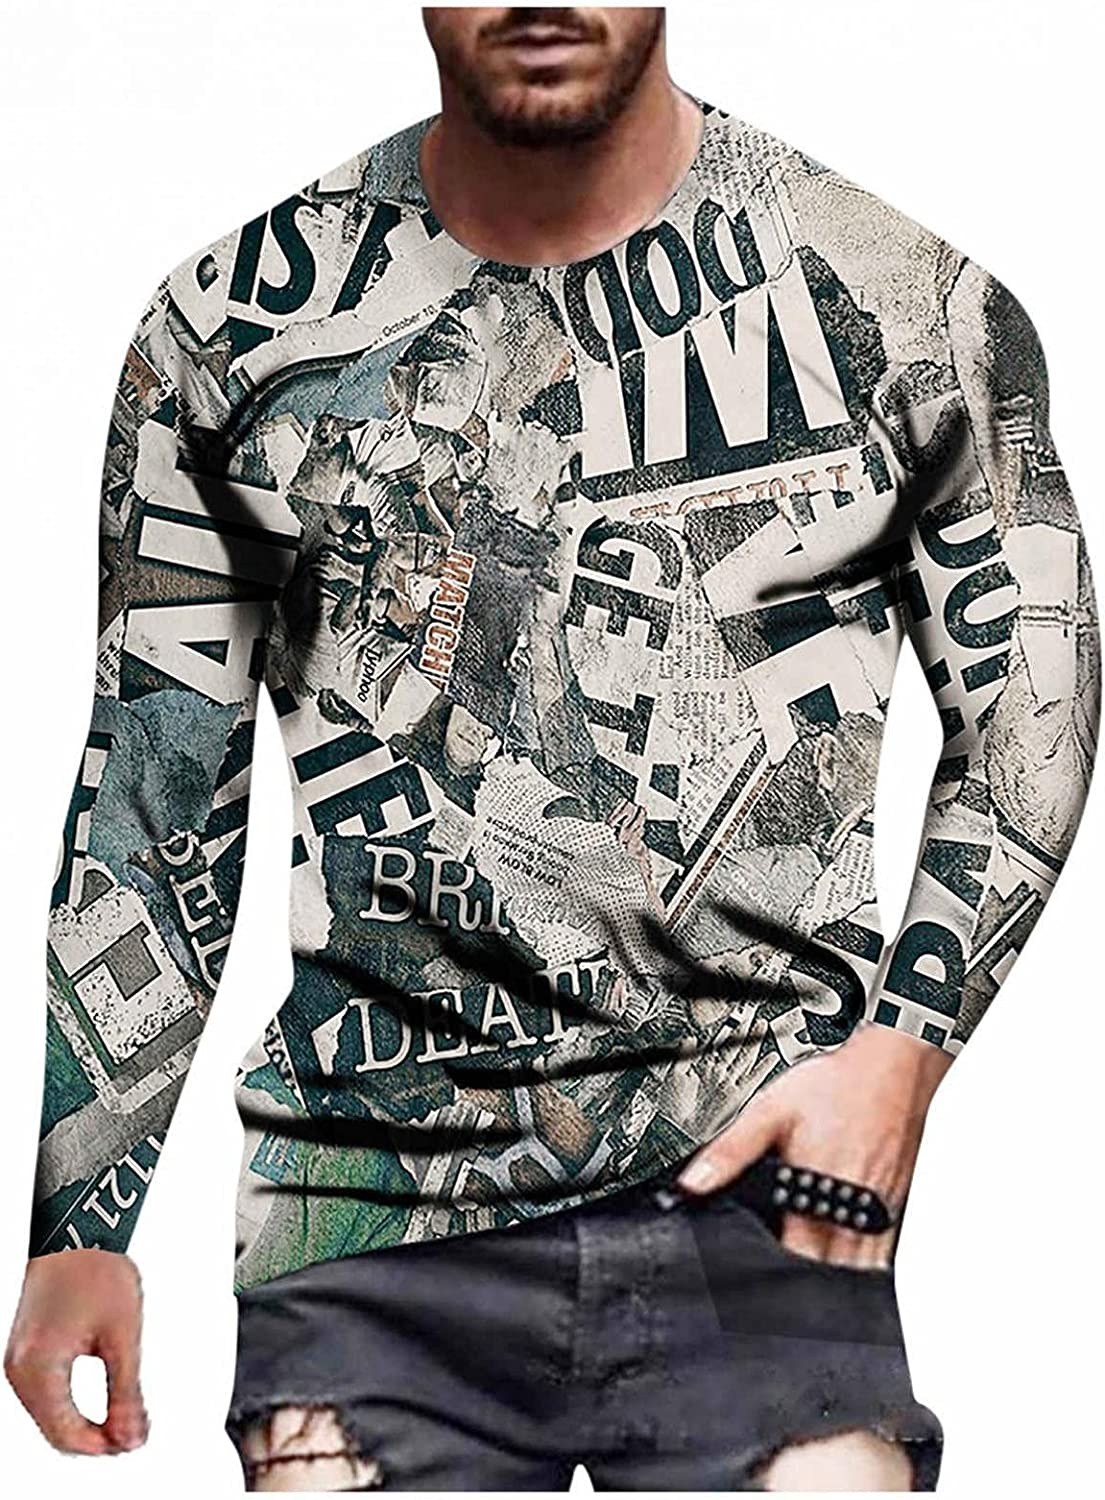 Aayomet T-Shirts for Men Fashion Printed Crewneck Long Sleeve Sweatshirts Casual Workout Sport Blouses Tops Tee Shirts